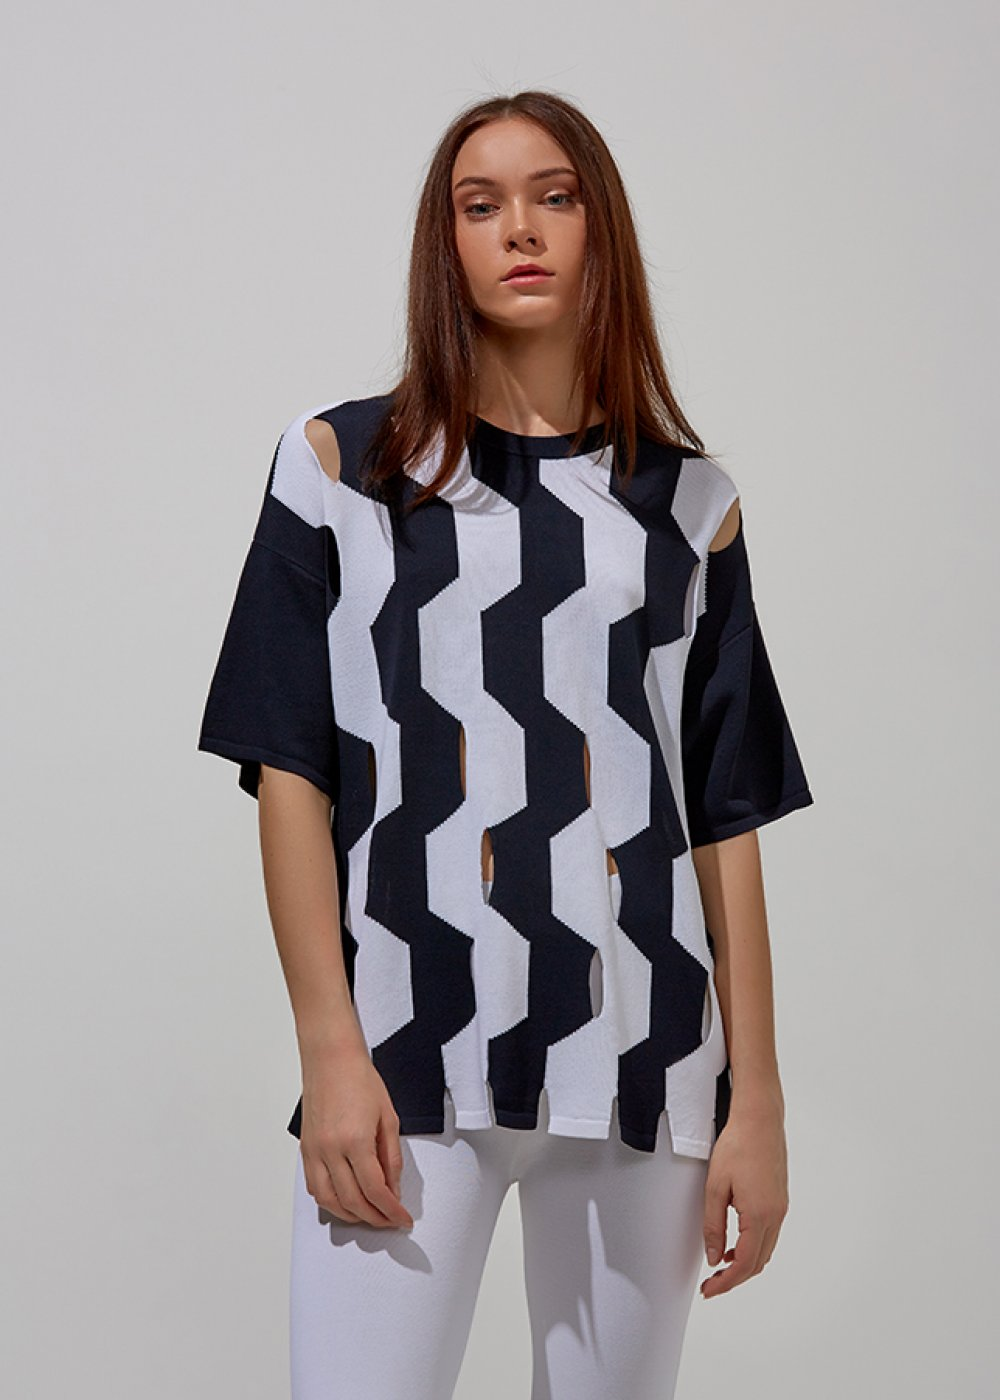 CUT OUT PATTERNED NAVY KNIT TOP